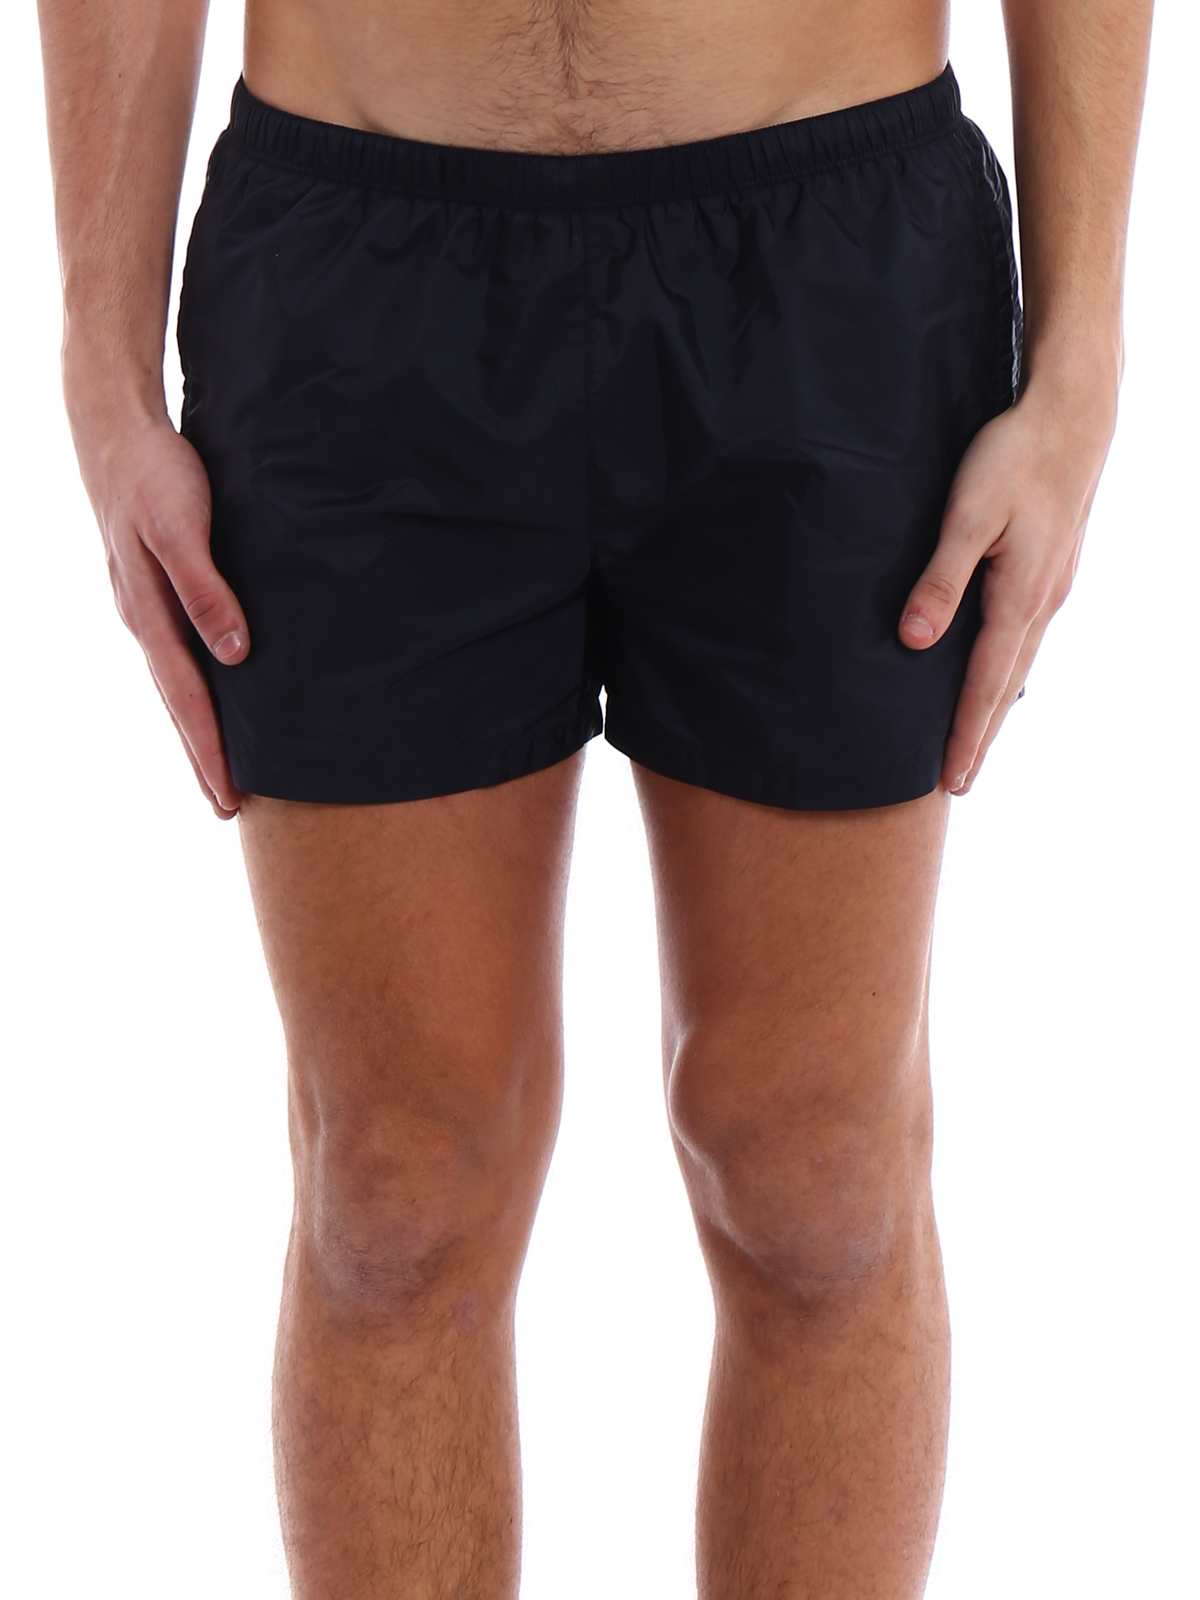 00f6035638f42 iKRIX PRADA: Swim shorts & swimming trunks - Dark blue nylon swim shorts